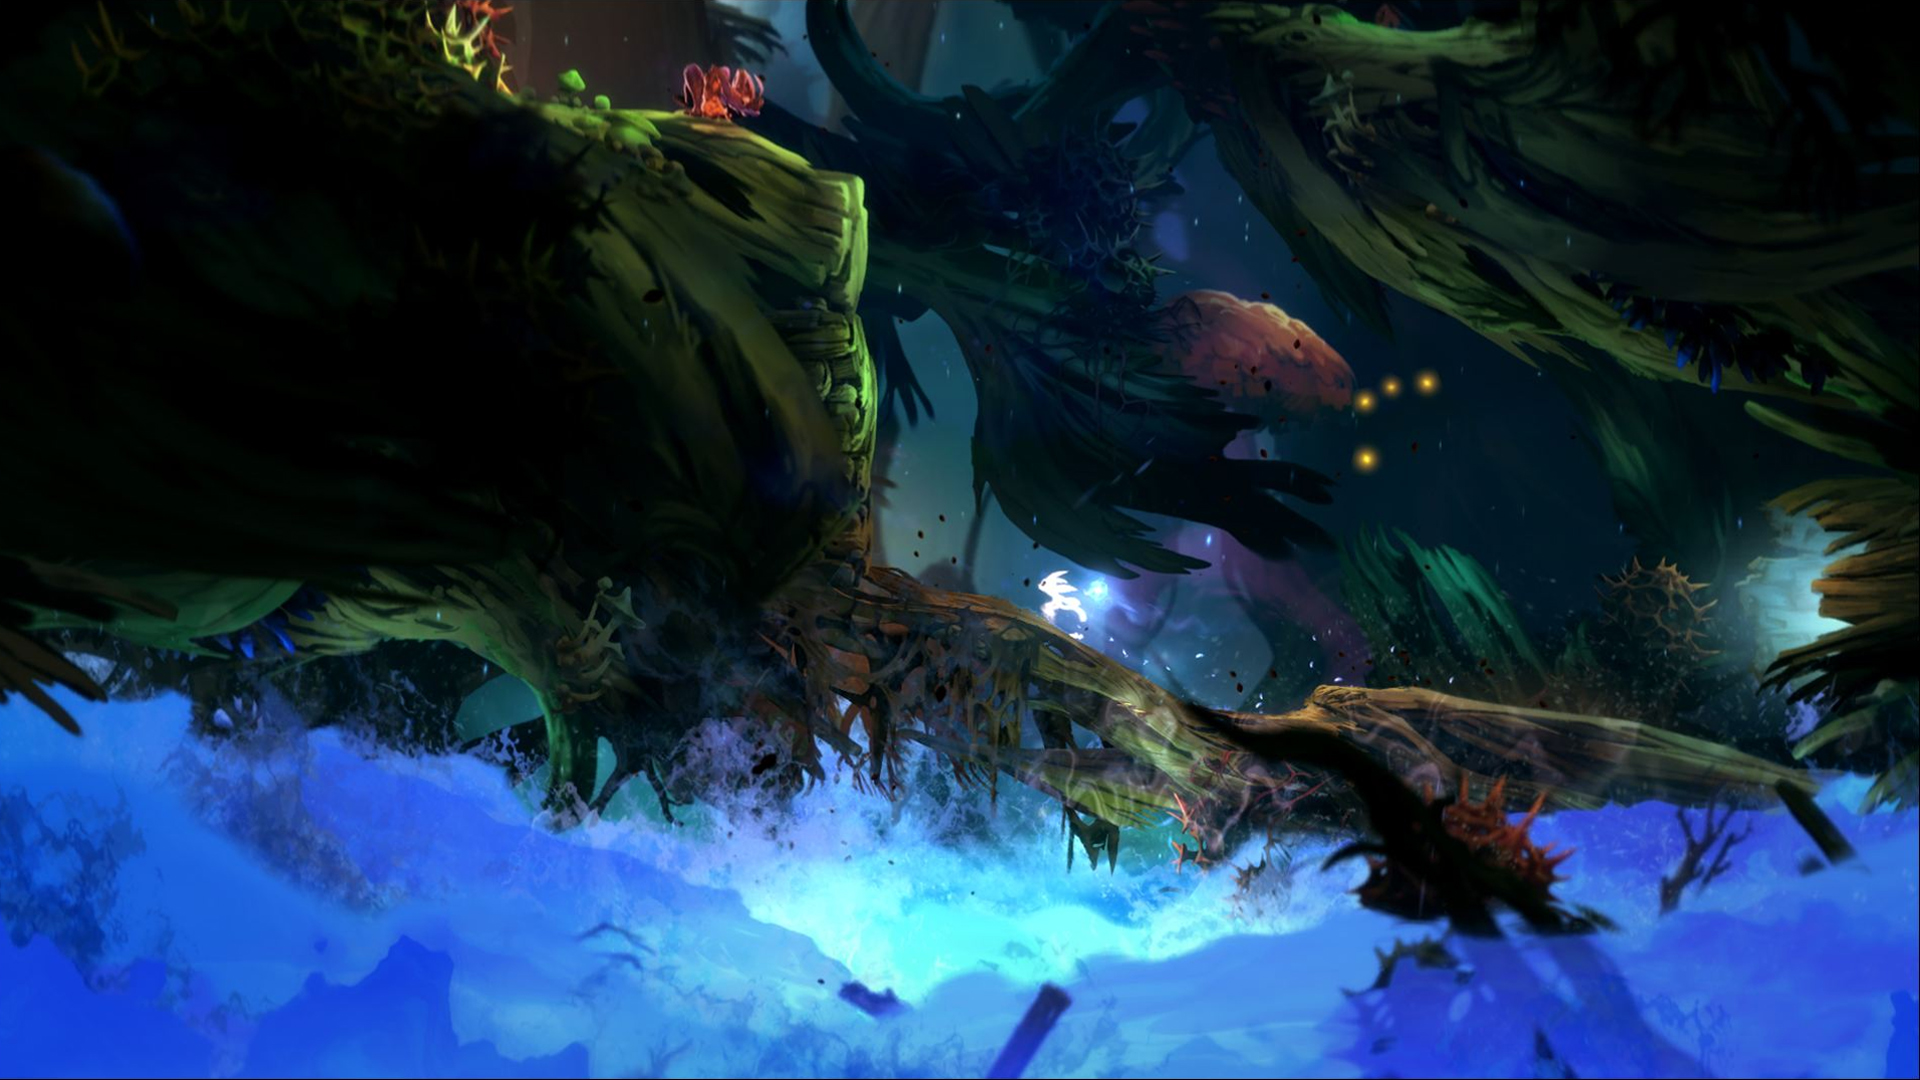 Free Download Ori And The Blind Forest Computer Wallpapers Desktop